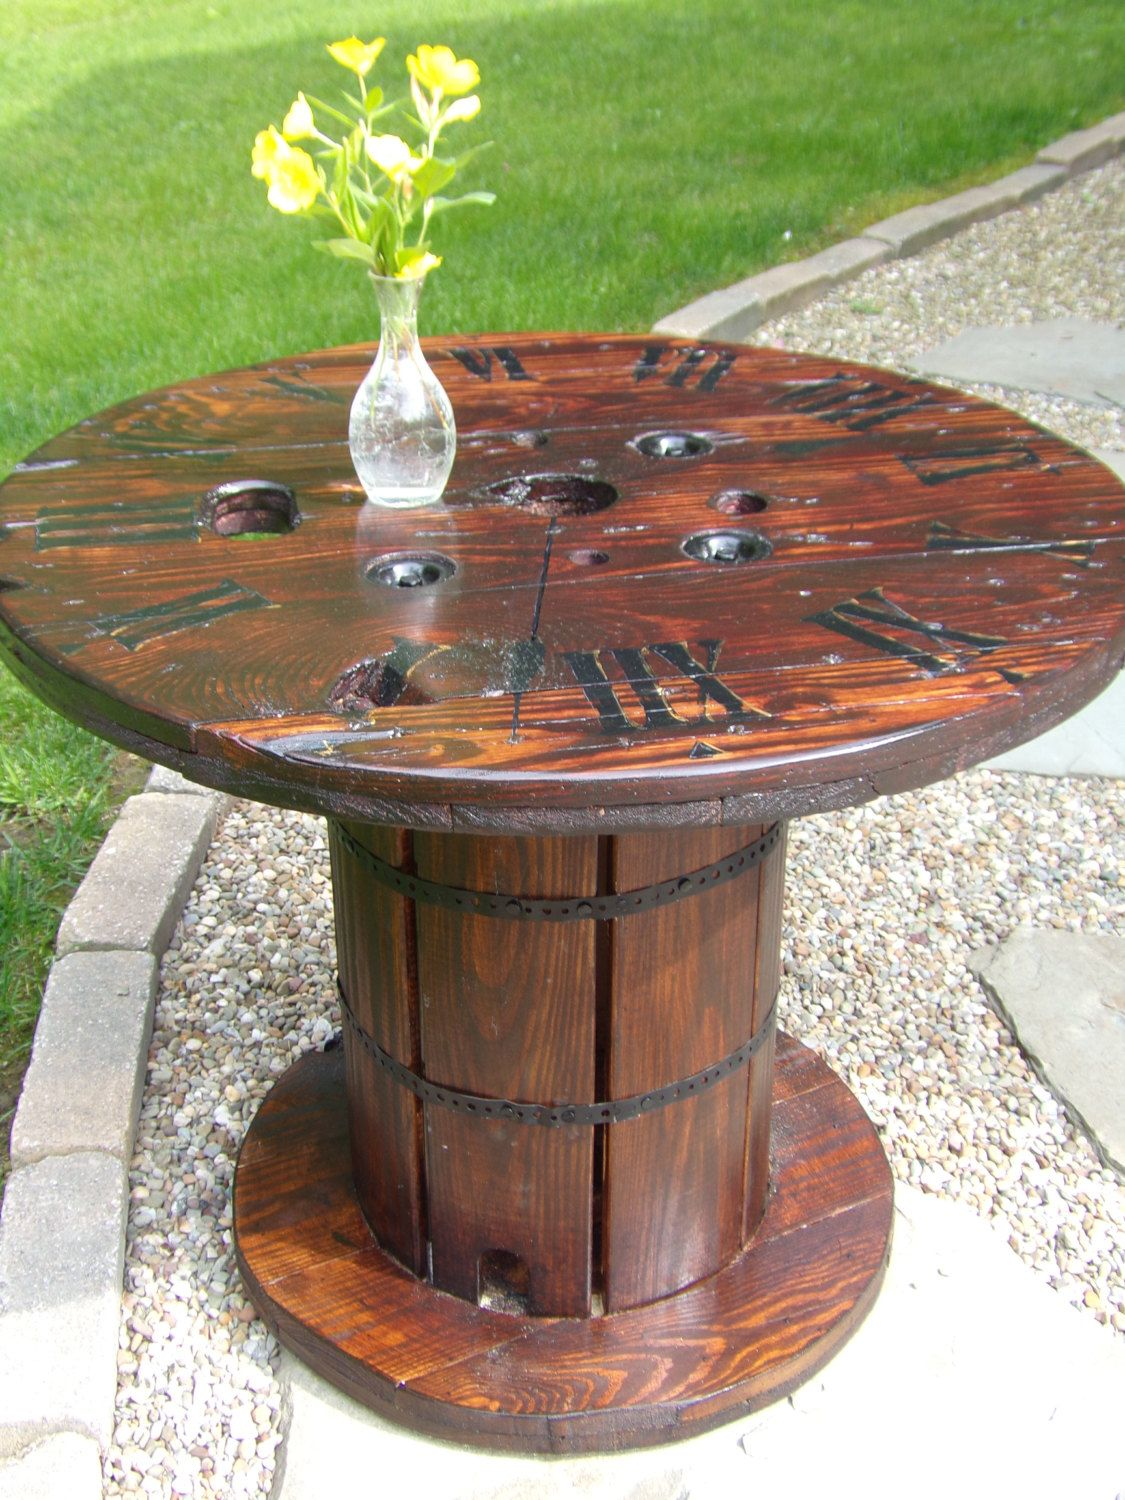 Do It Yourself Home Design: SOLD / Upcycled Repurposed Spool Table With Clock Face Top